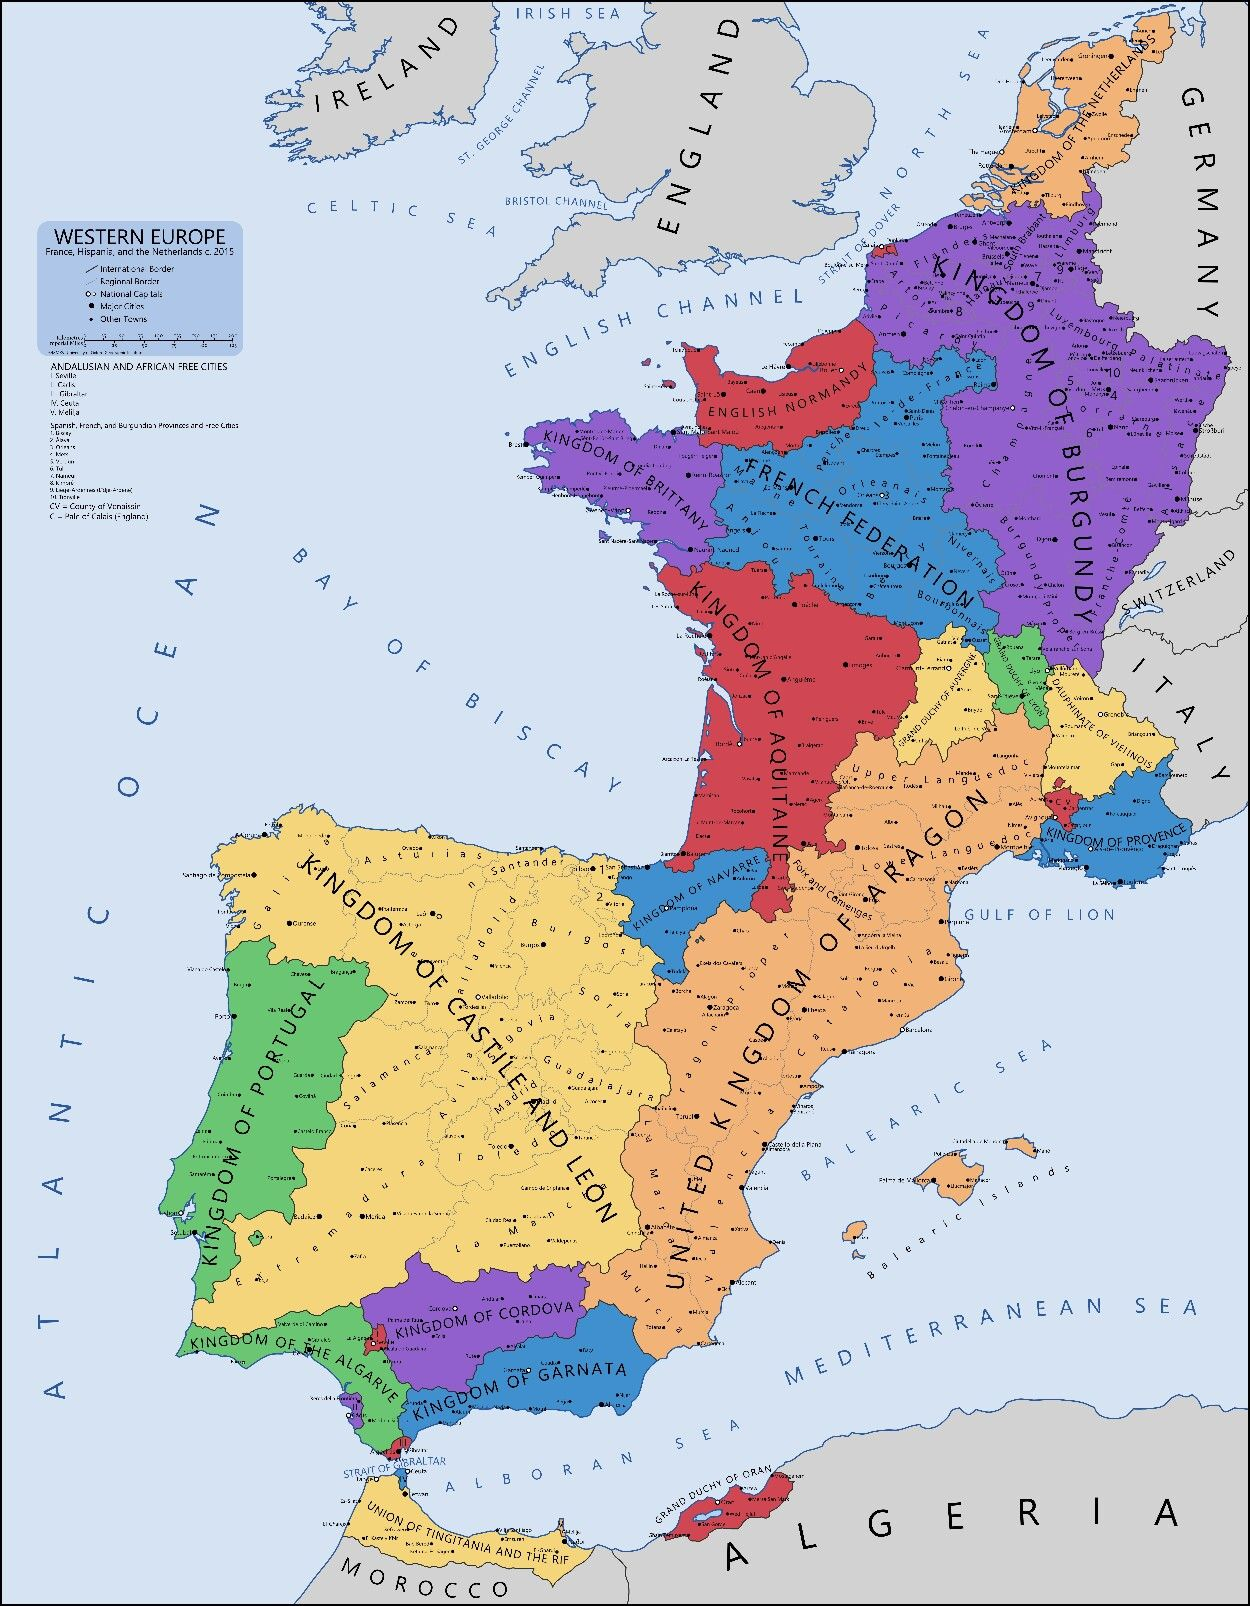 Spain Map Of Europe.Western Europe Long Time Ago Maps Spain History Historical Maps